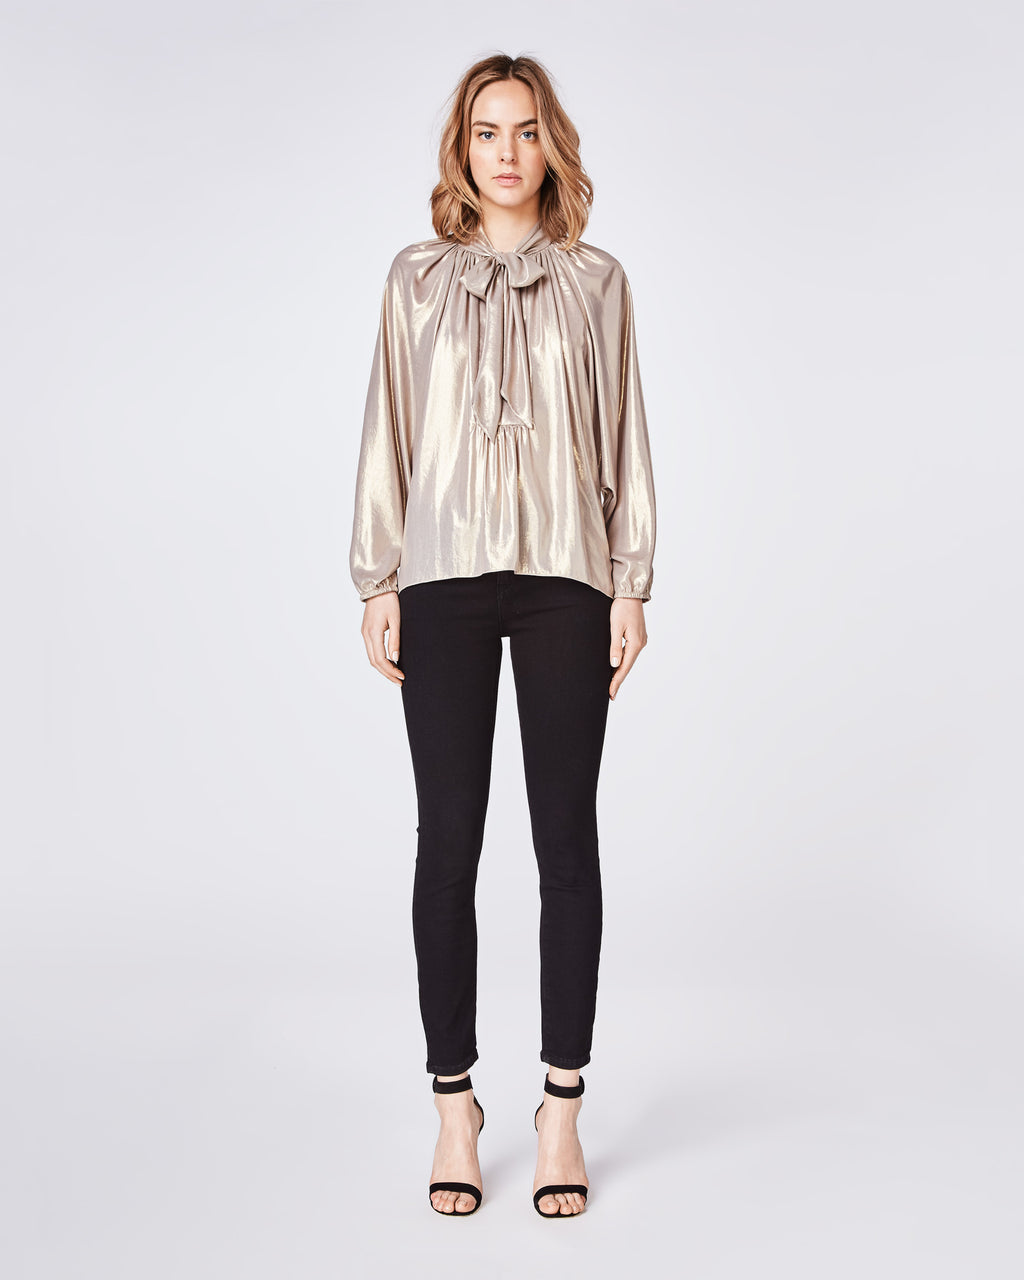 BK10269 - METALLIC FOIL TIE BLOUSE - tops - blouses - A feminine style, but add the gold metallic fabric on this long-sleeve blouse for a downtown vibe. This lightweight blouse features a neck bow tie at the neckline and a dolman style sleeve. Final Sale